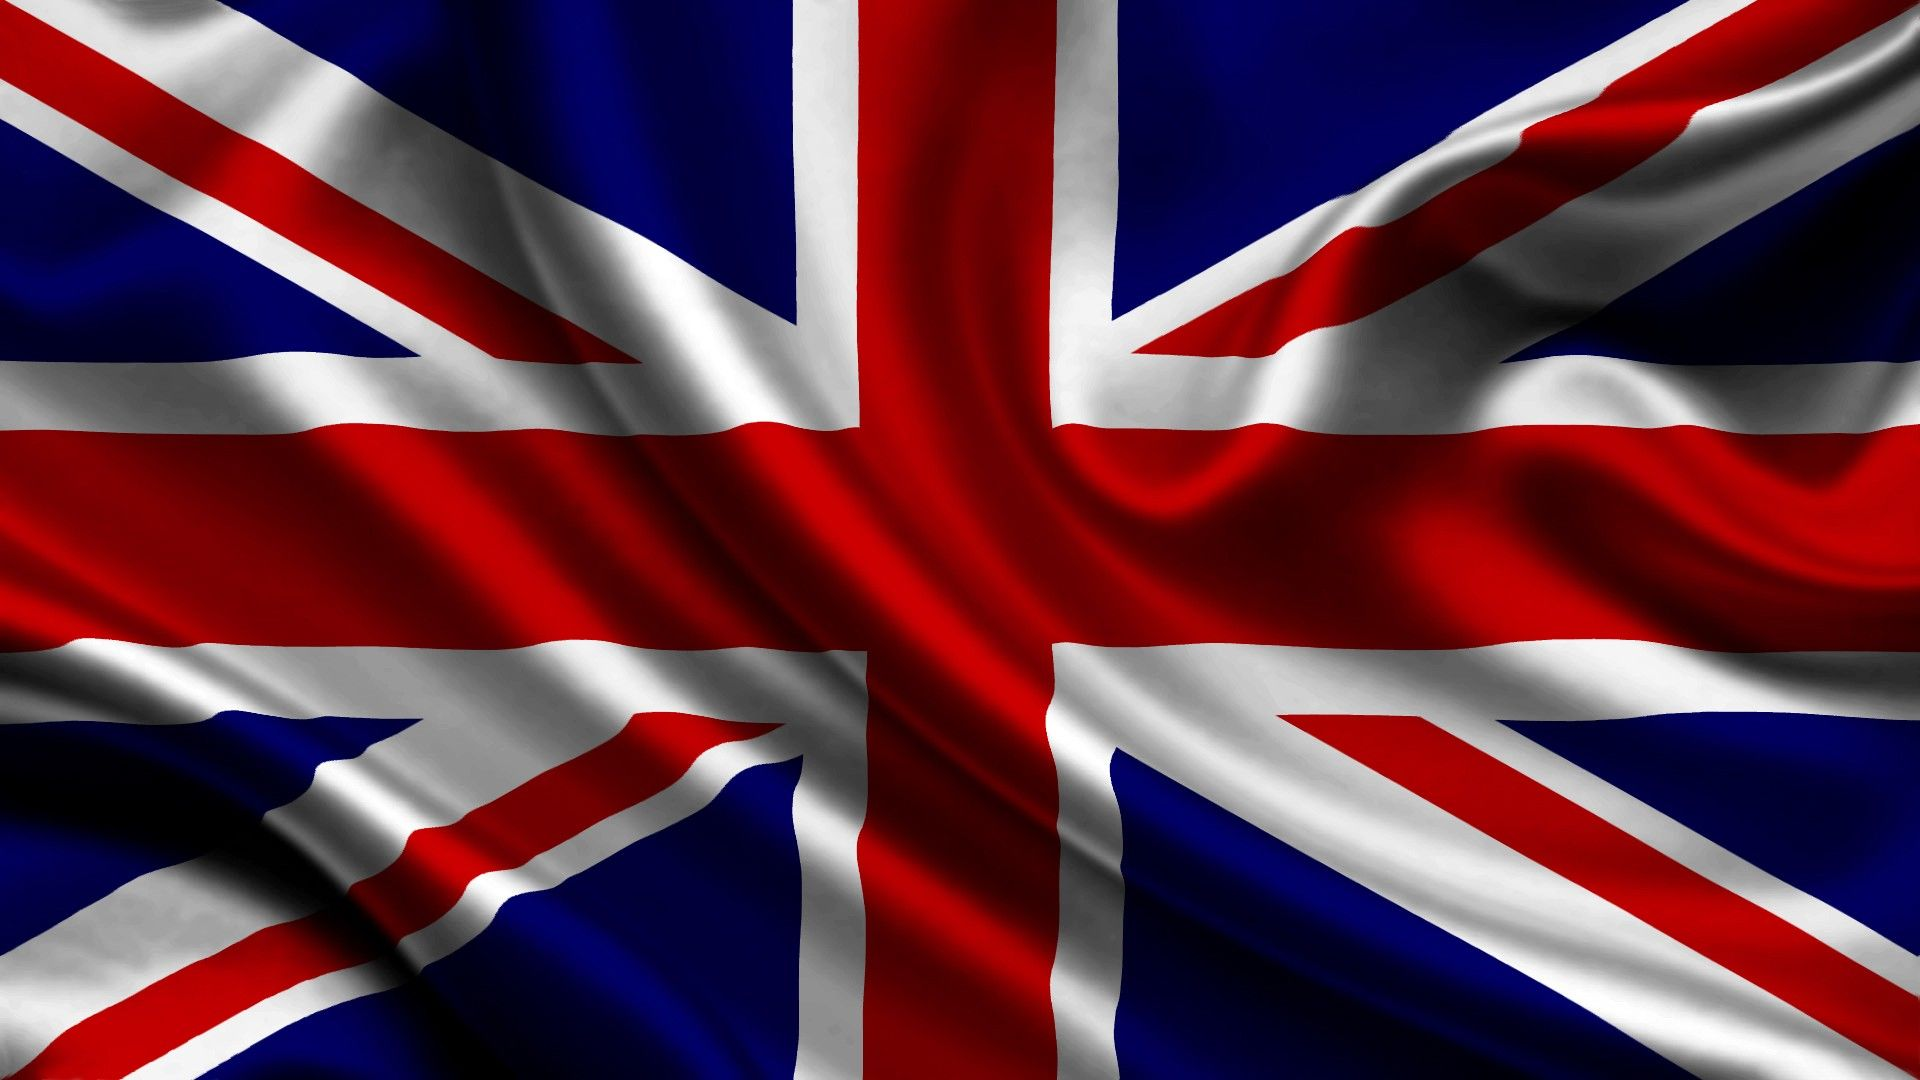 God Save the Queen: The National Anthem of England